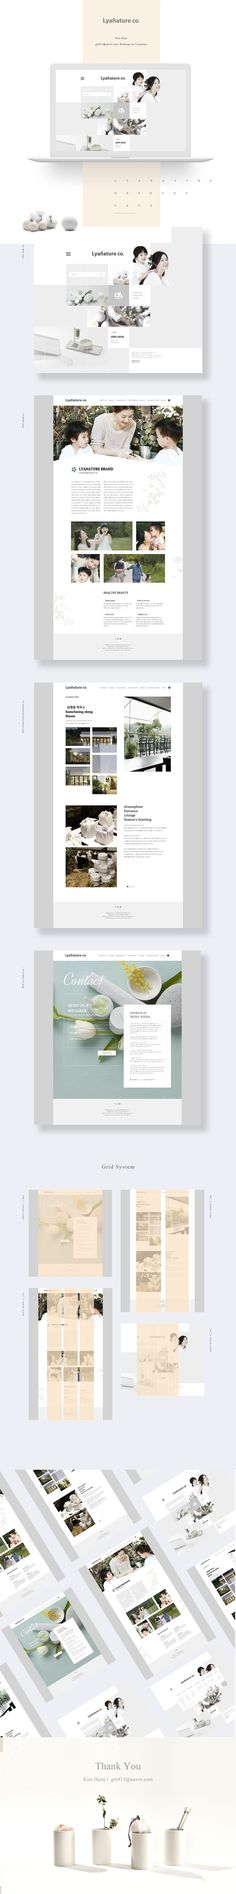 Lyanature Redesign - Designer - Kim-hana on Behance